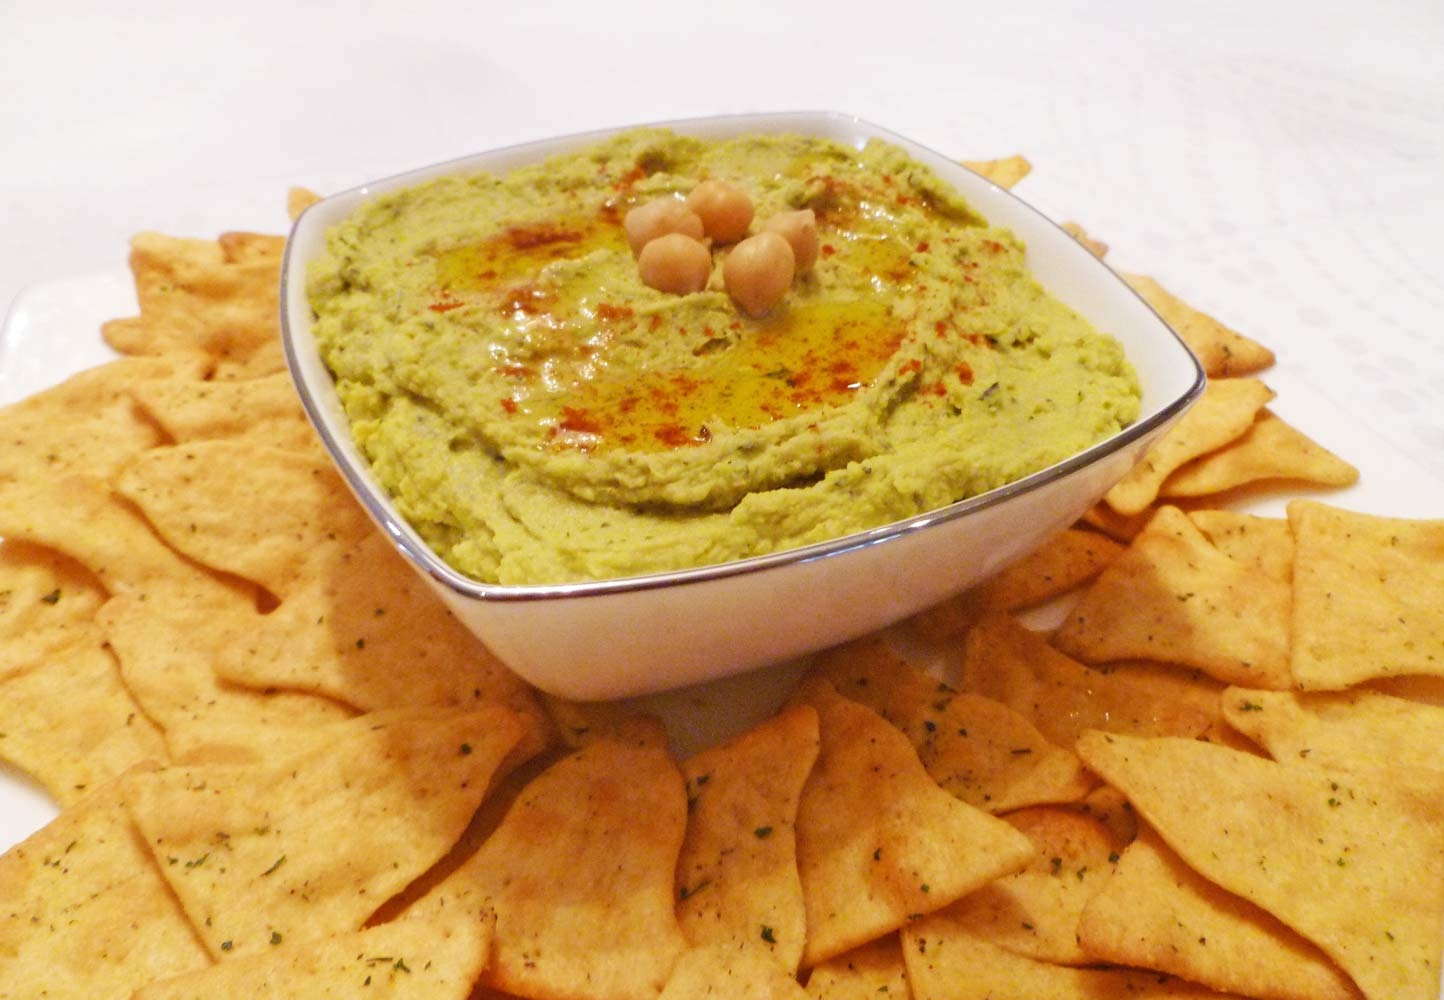 Avocado Basil Hummus - This Happy Mommy